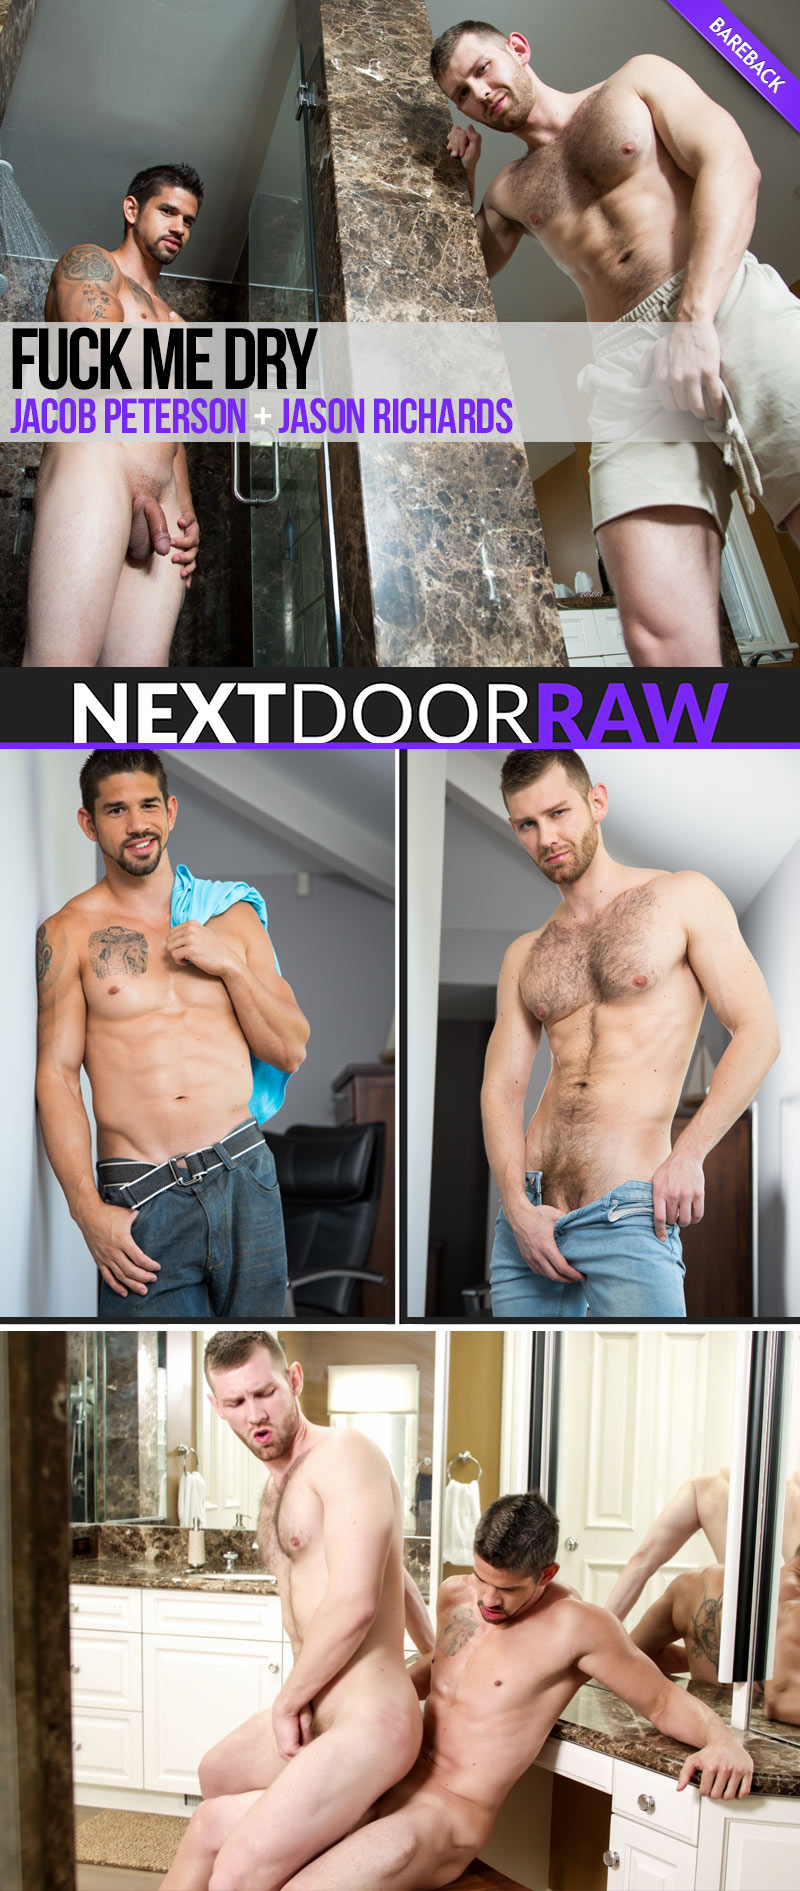 Fuck Me Dry (Jason Richards Fucks Jacob Peterson) (Bareback) at NextDoorRAW!